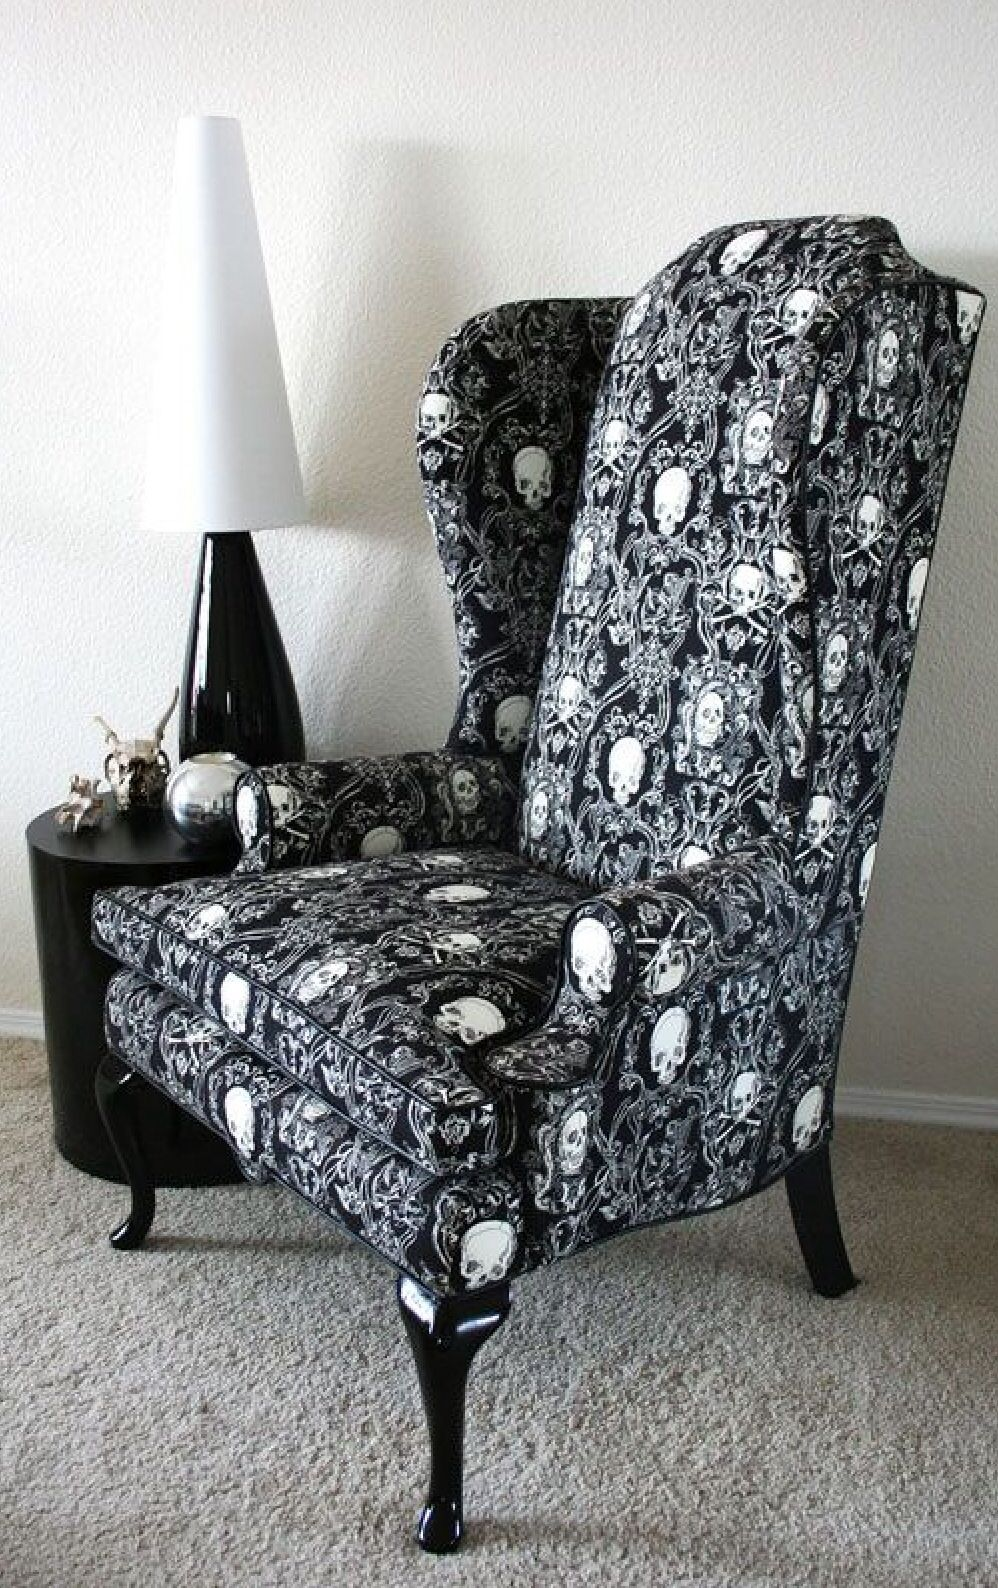 Black skull chair - Black Skull Chair Love The Pattern